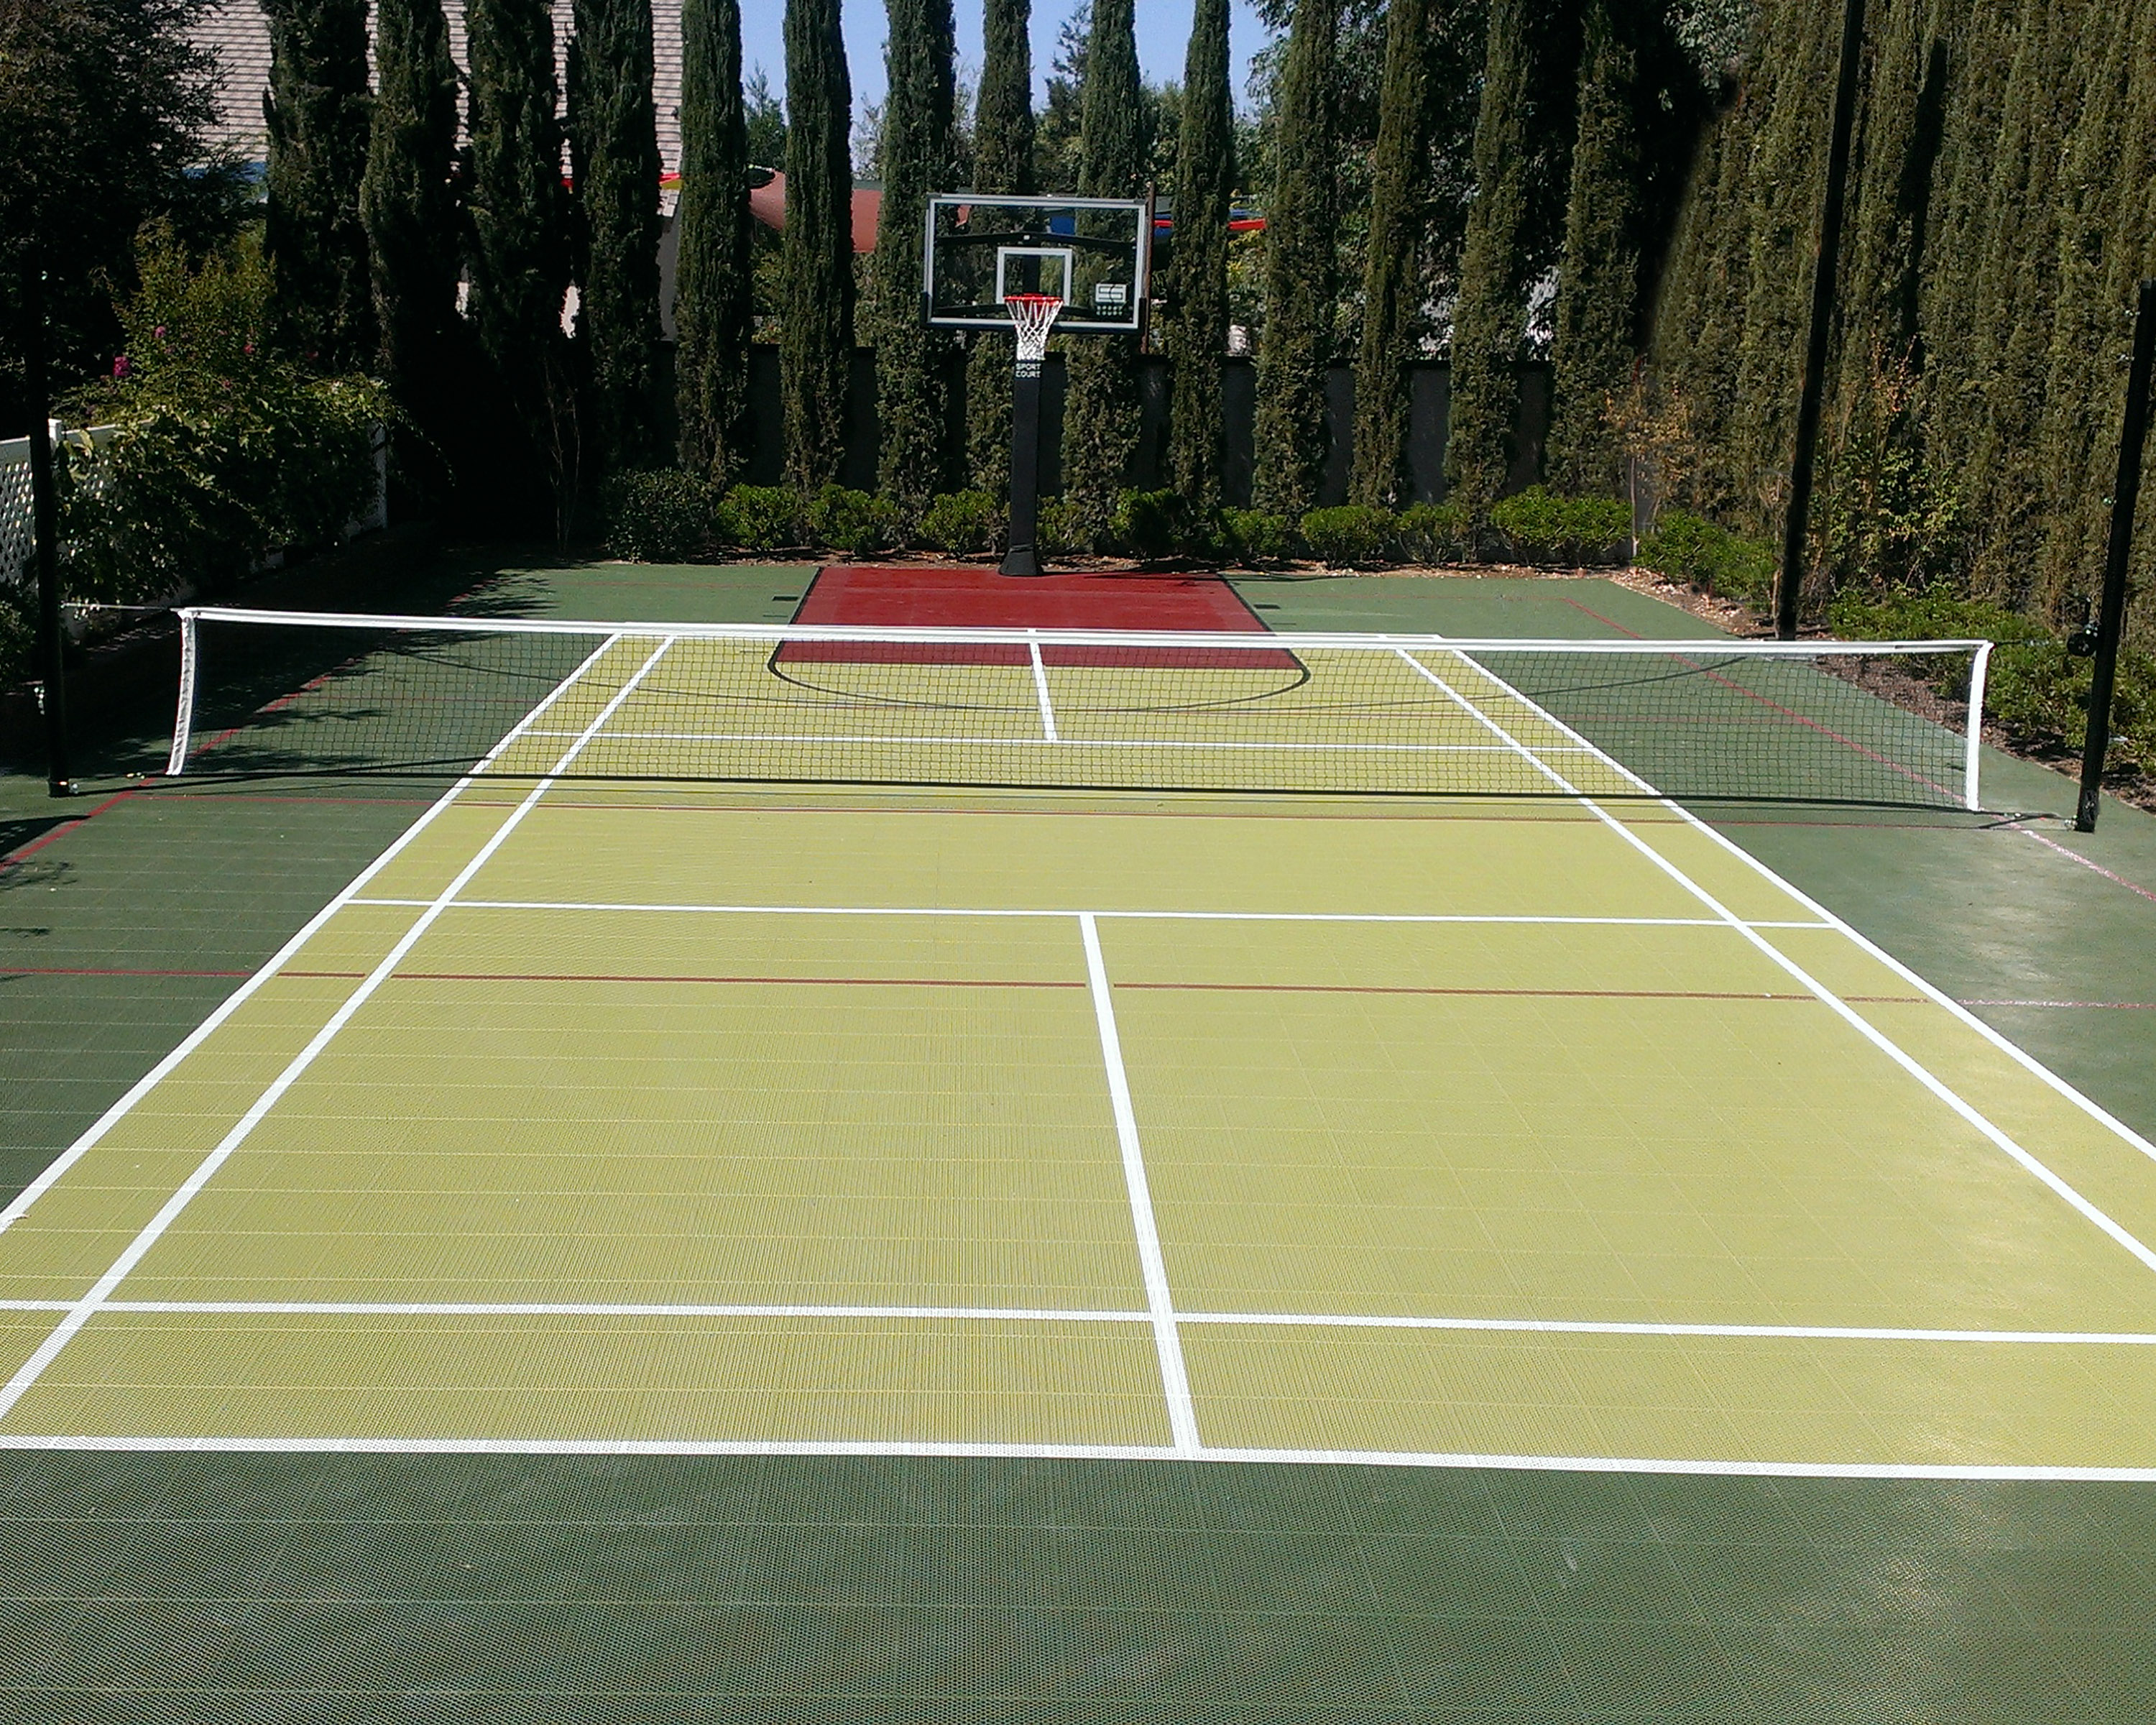 Home Tennis Court and Basketball Court designed with Court Builder™